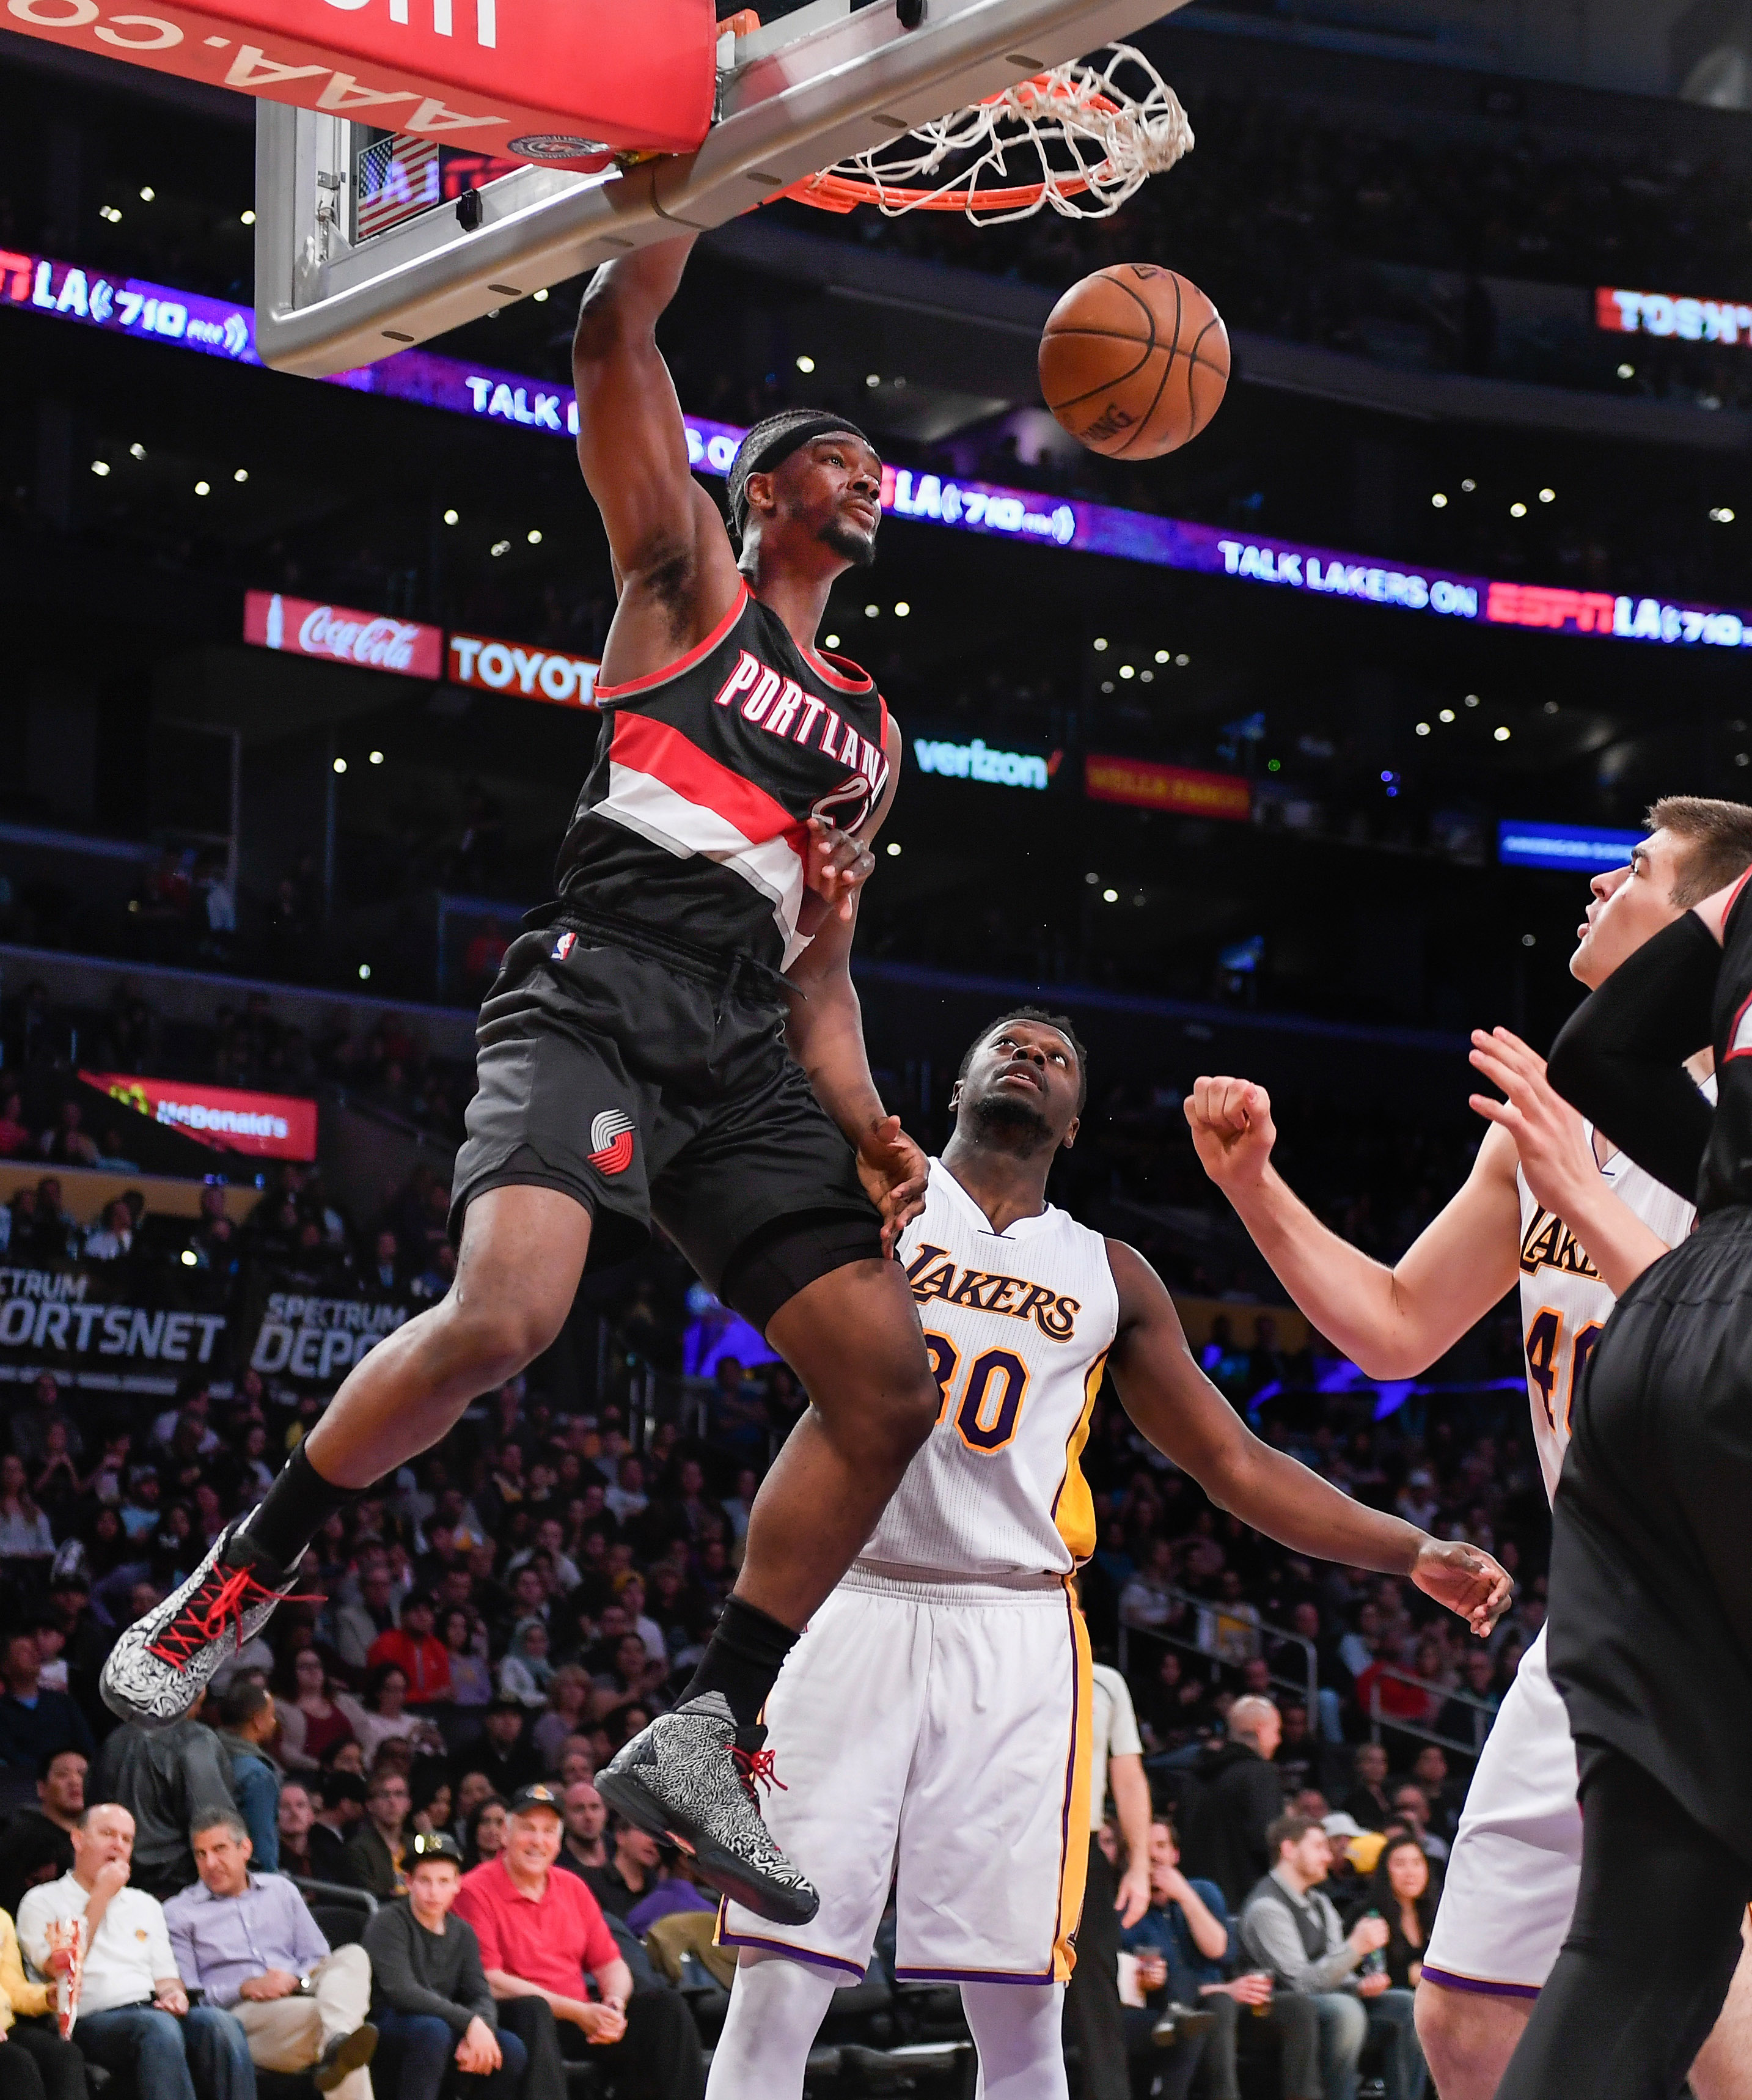 Portland Trail Blazers Roster: Blazers Overtake 8th Spot With Dominant Win Against The Lakers